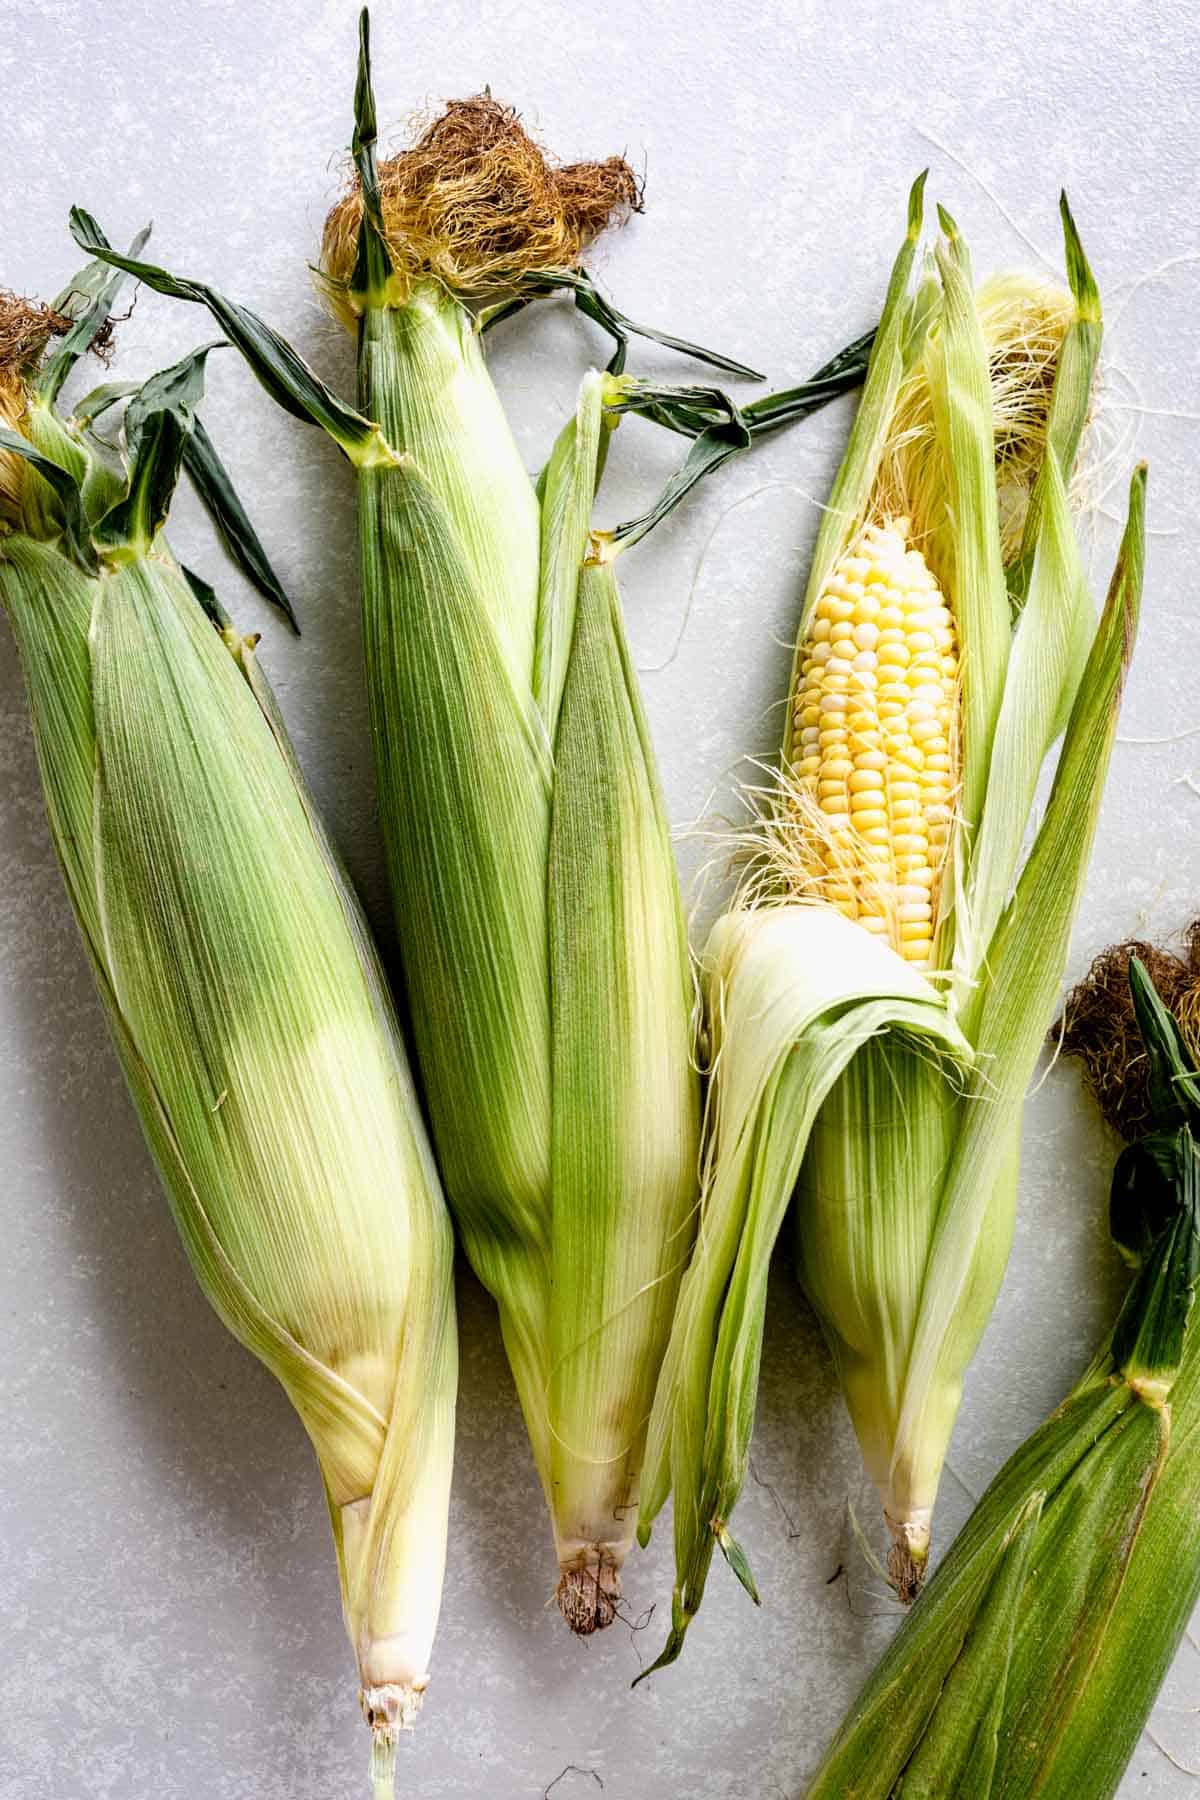 three cobs of yellow corn with green husks on a light colored table.